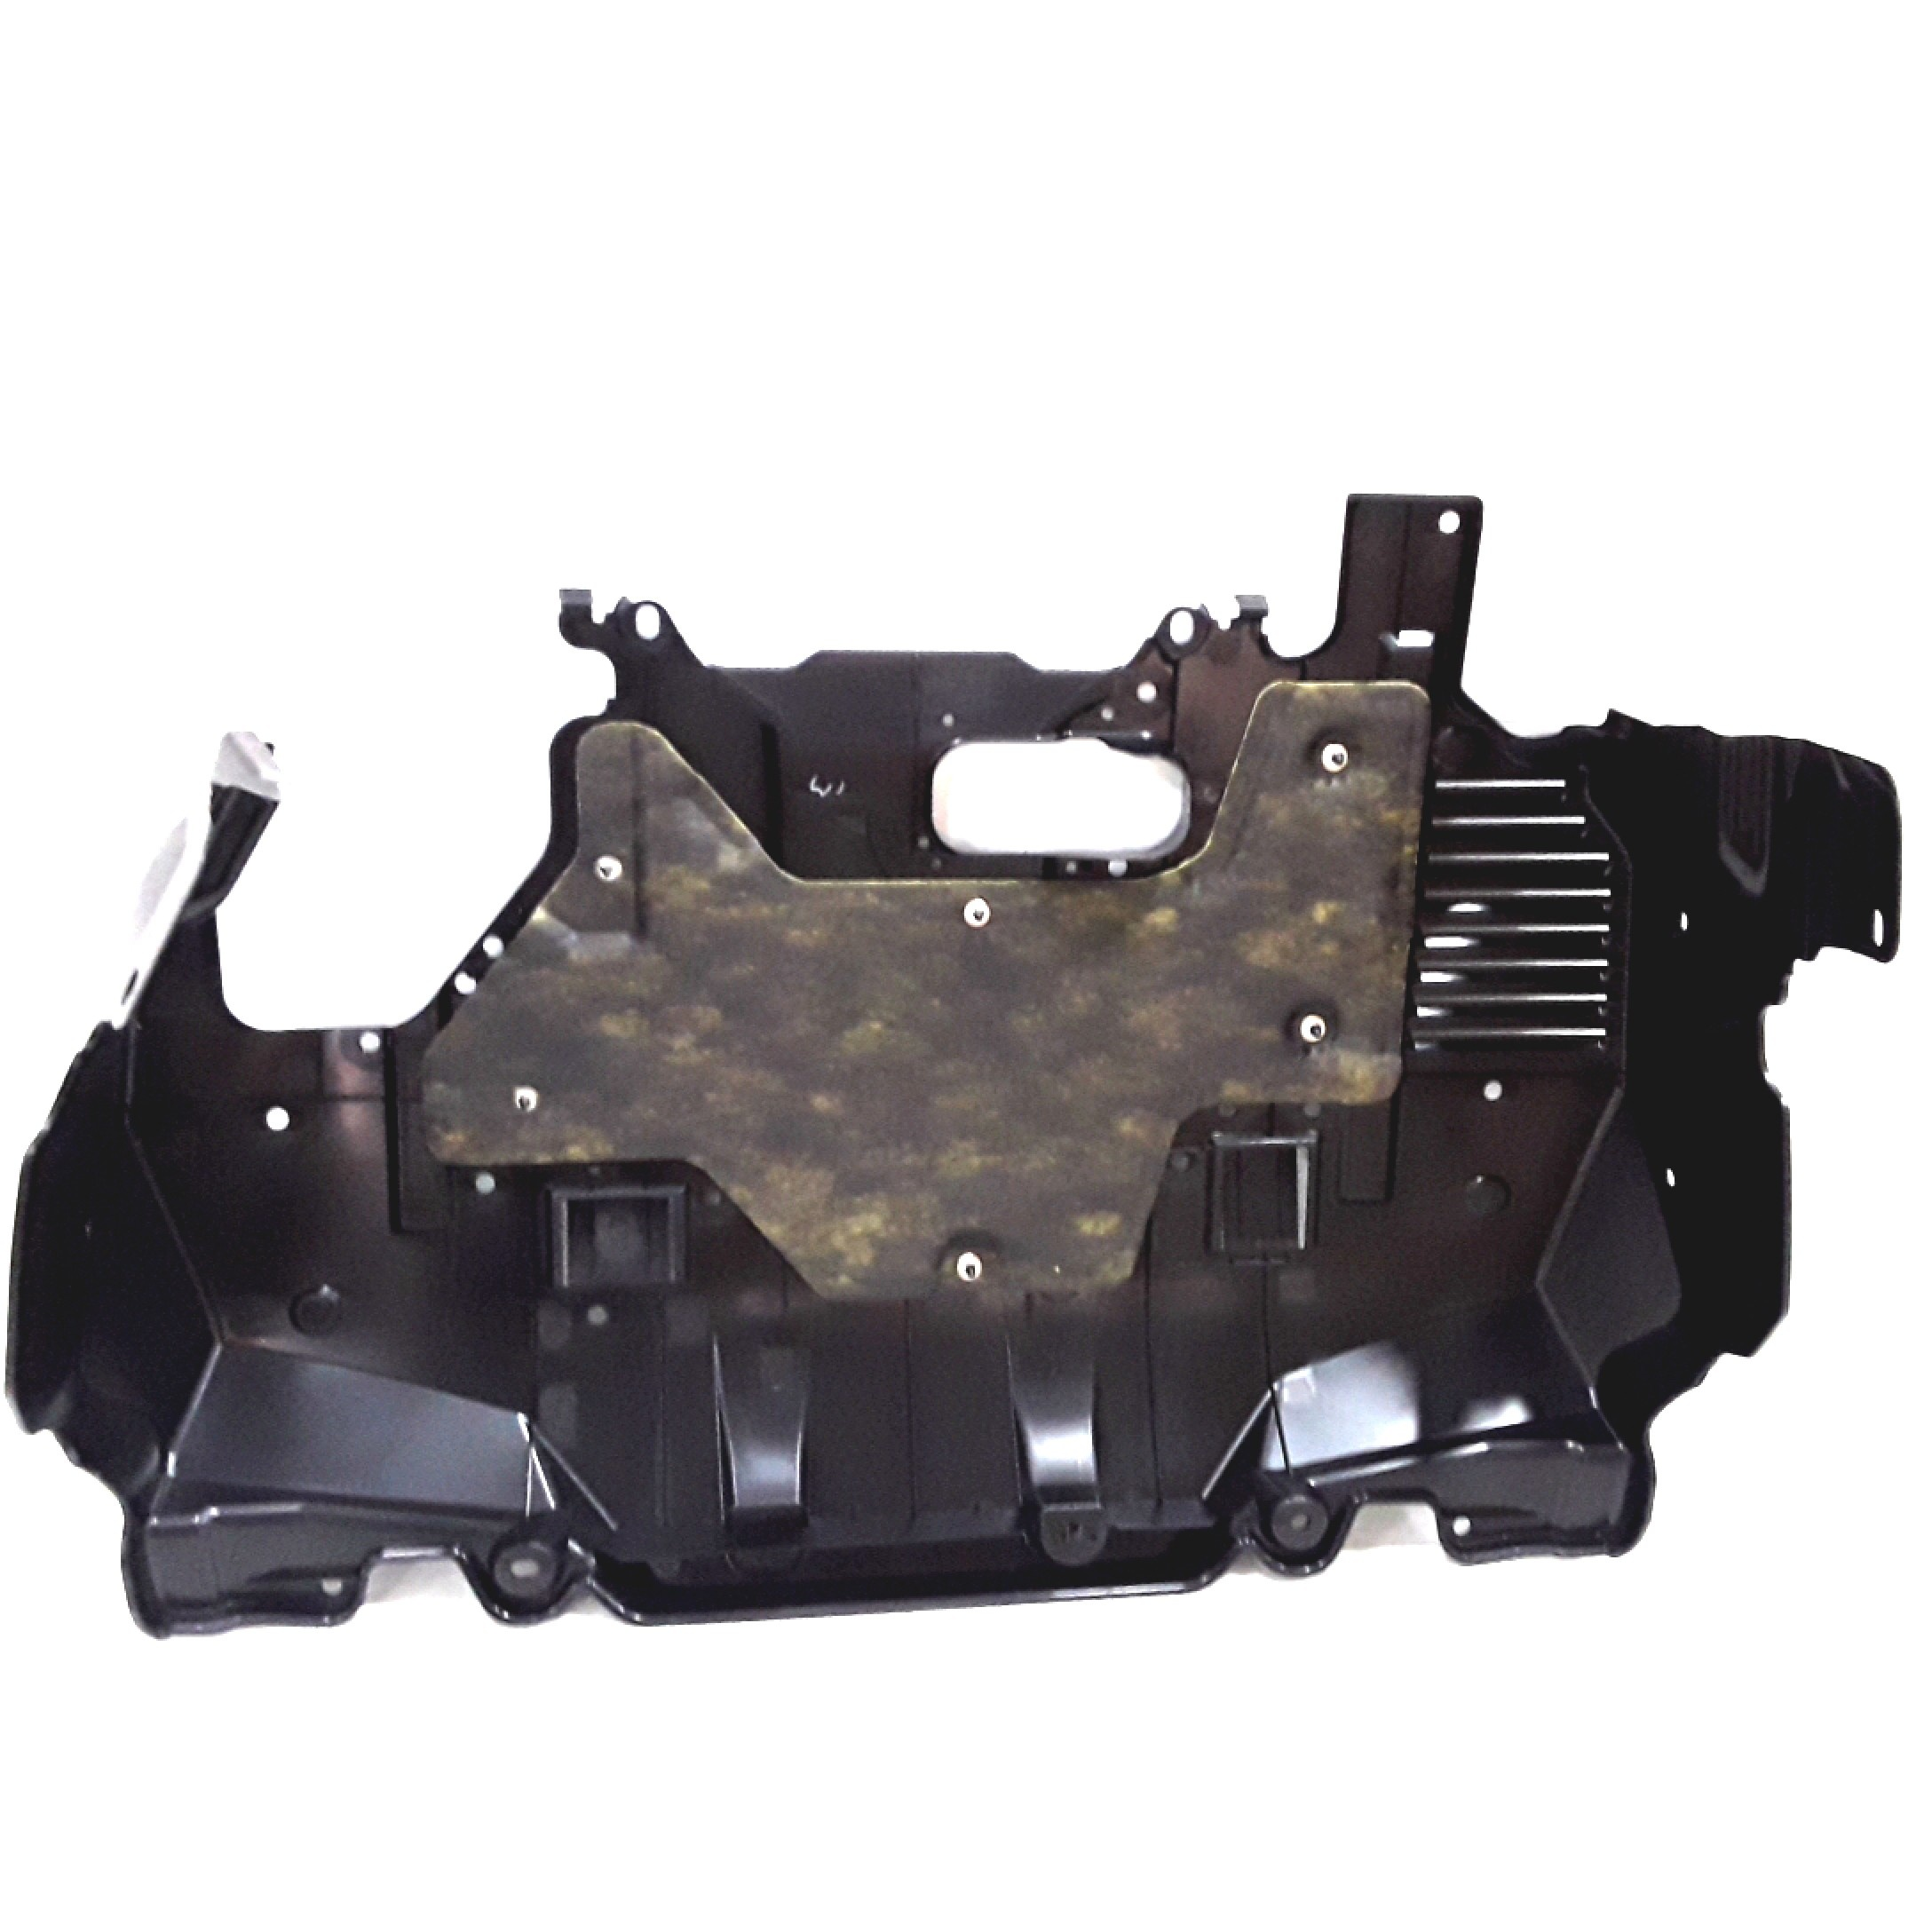 56410sg001 - Under Cover-front  Exhaust  Body